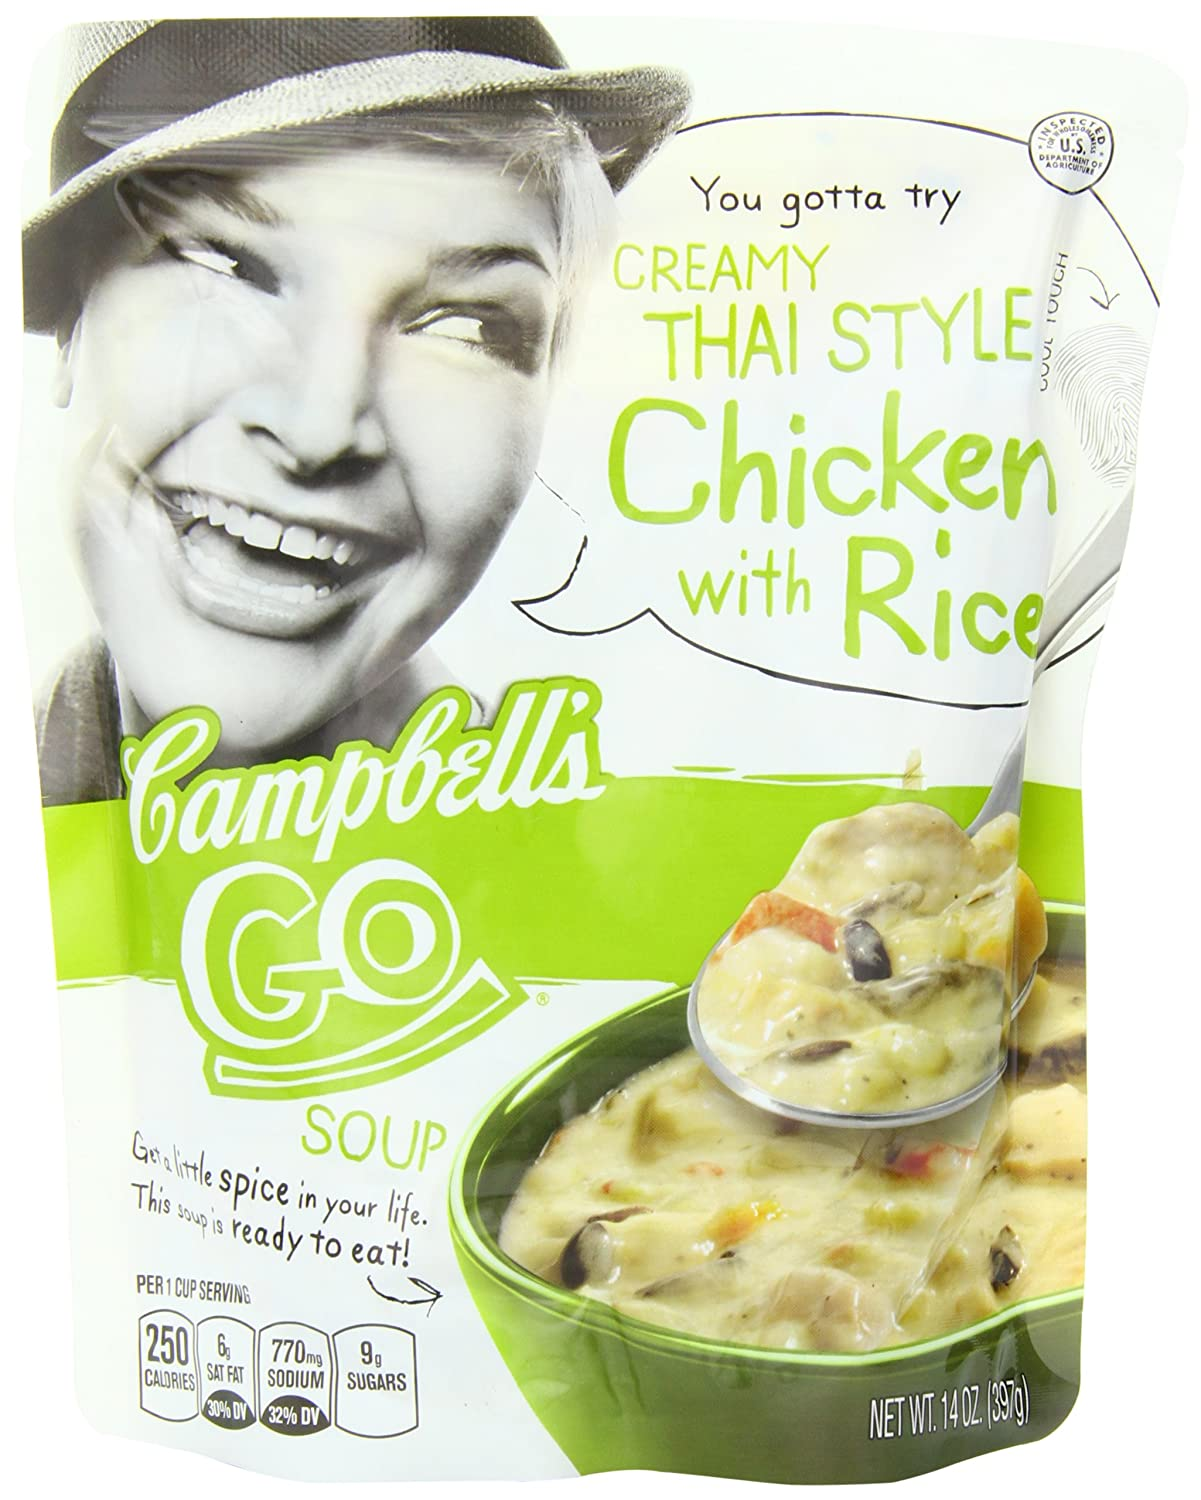 Amazoncom Campbells Go Soup Creamy Thai Style Chicken with Rice